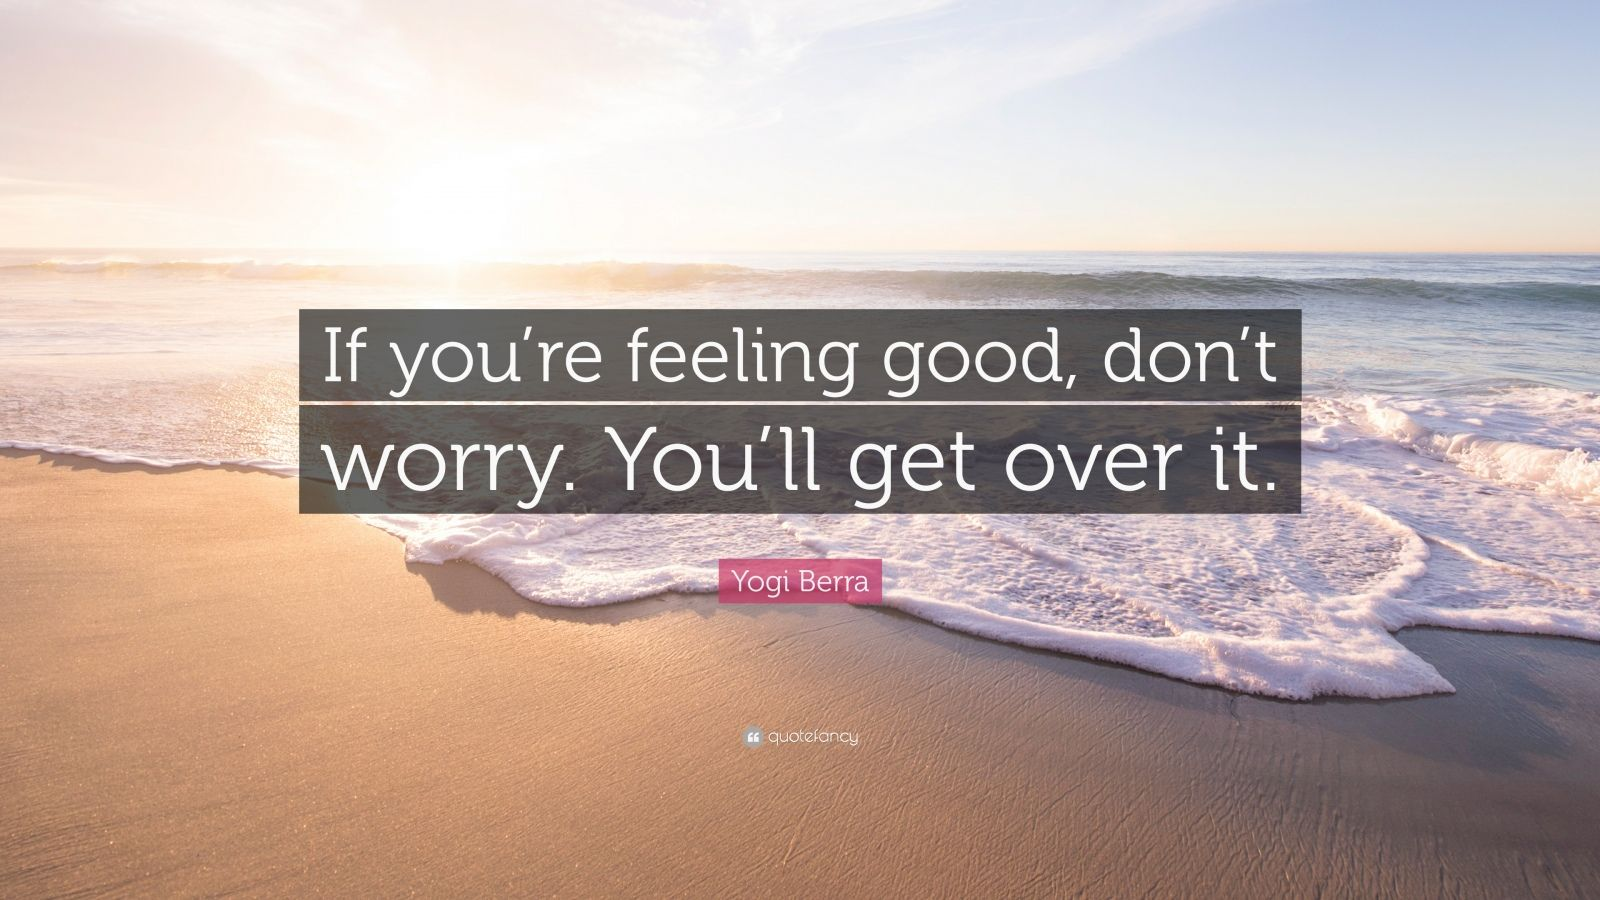 """Yogi Berra Quote: """"If you're feeling good, don't worry. You'll get over it."""""""